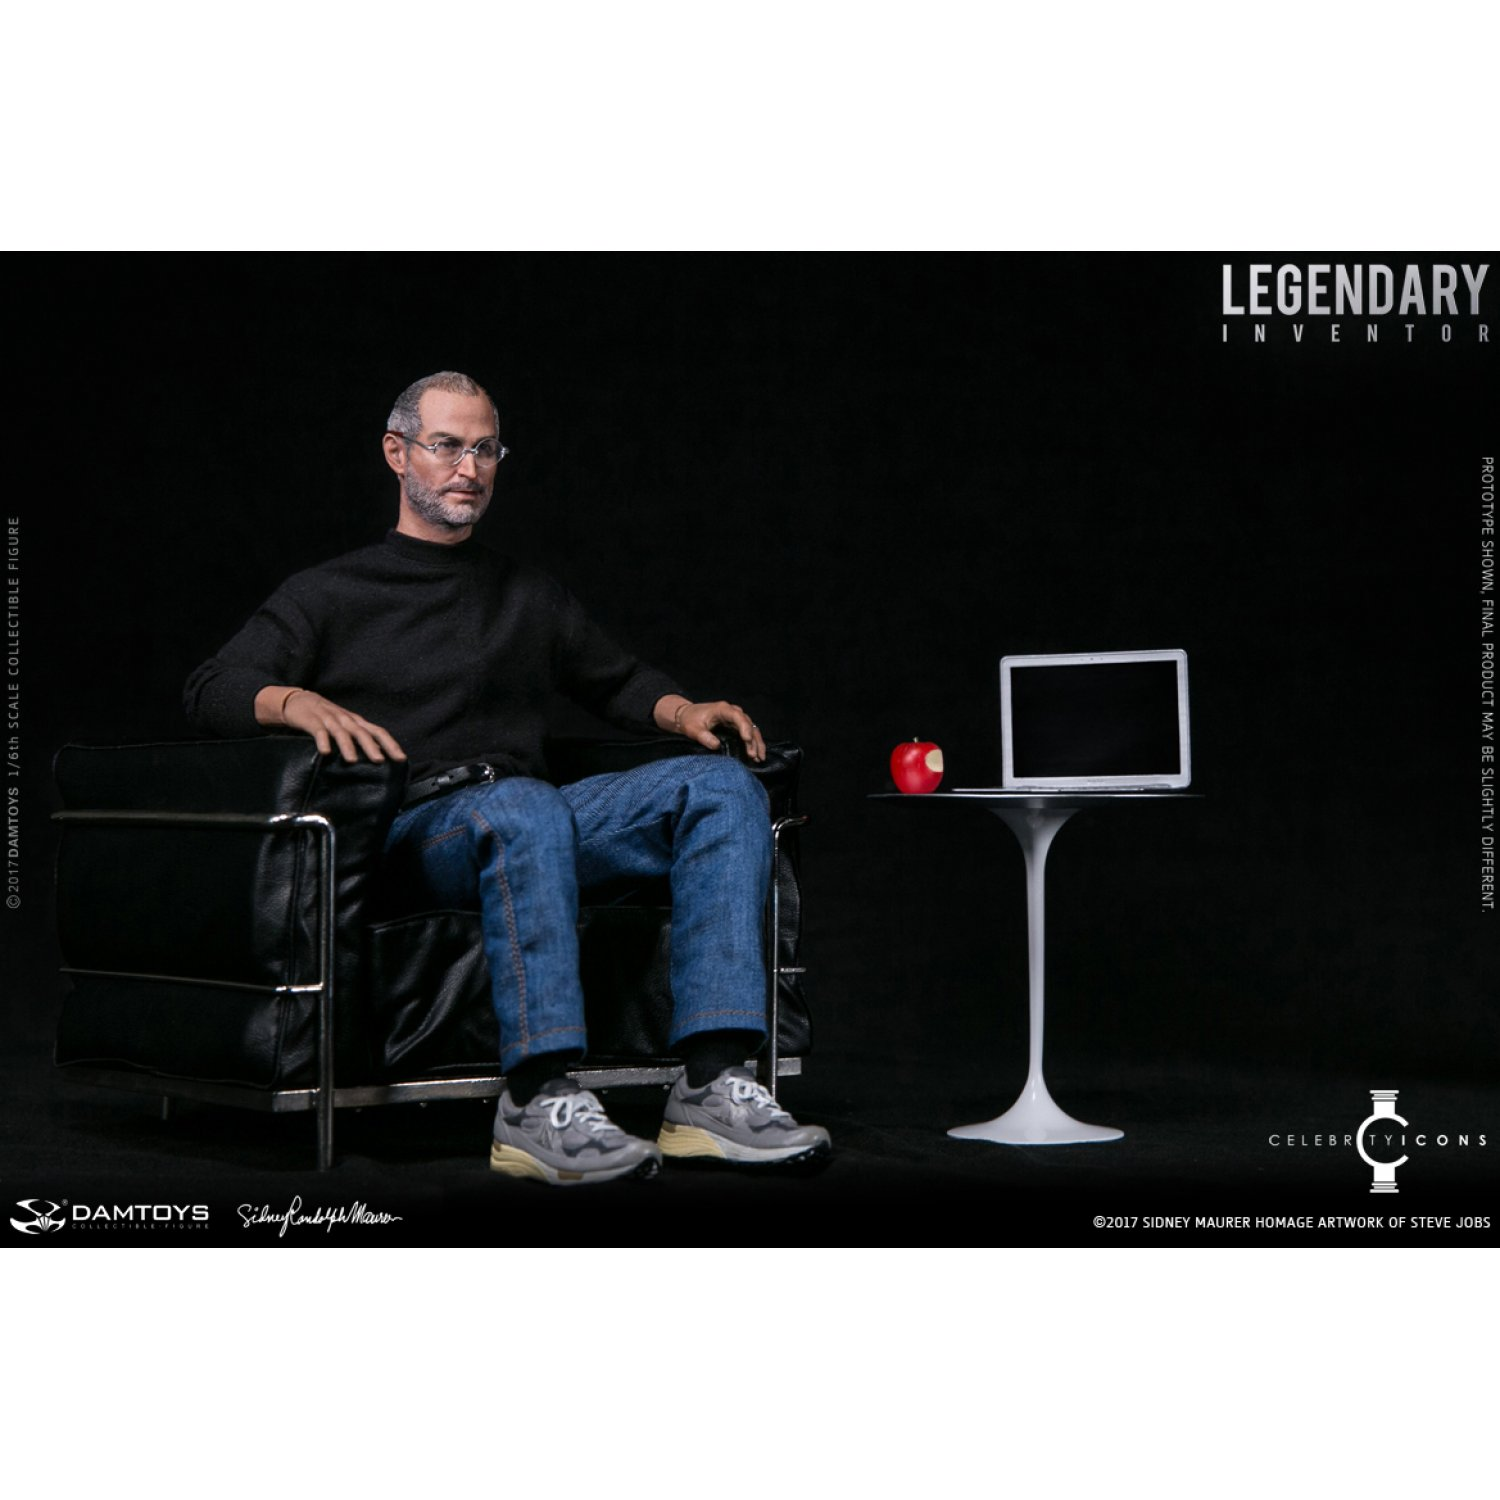 Steve Jobs figurina